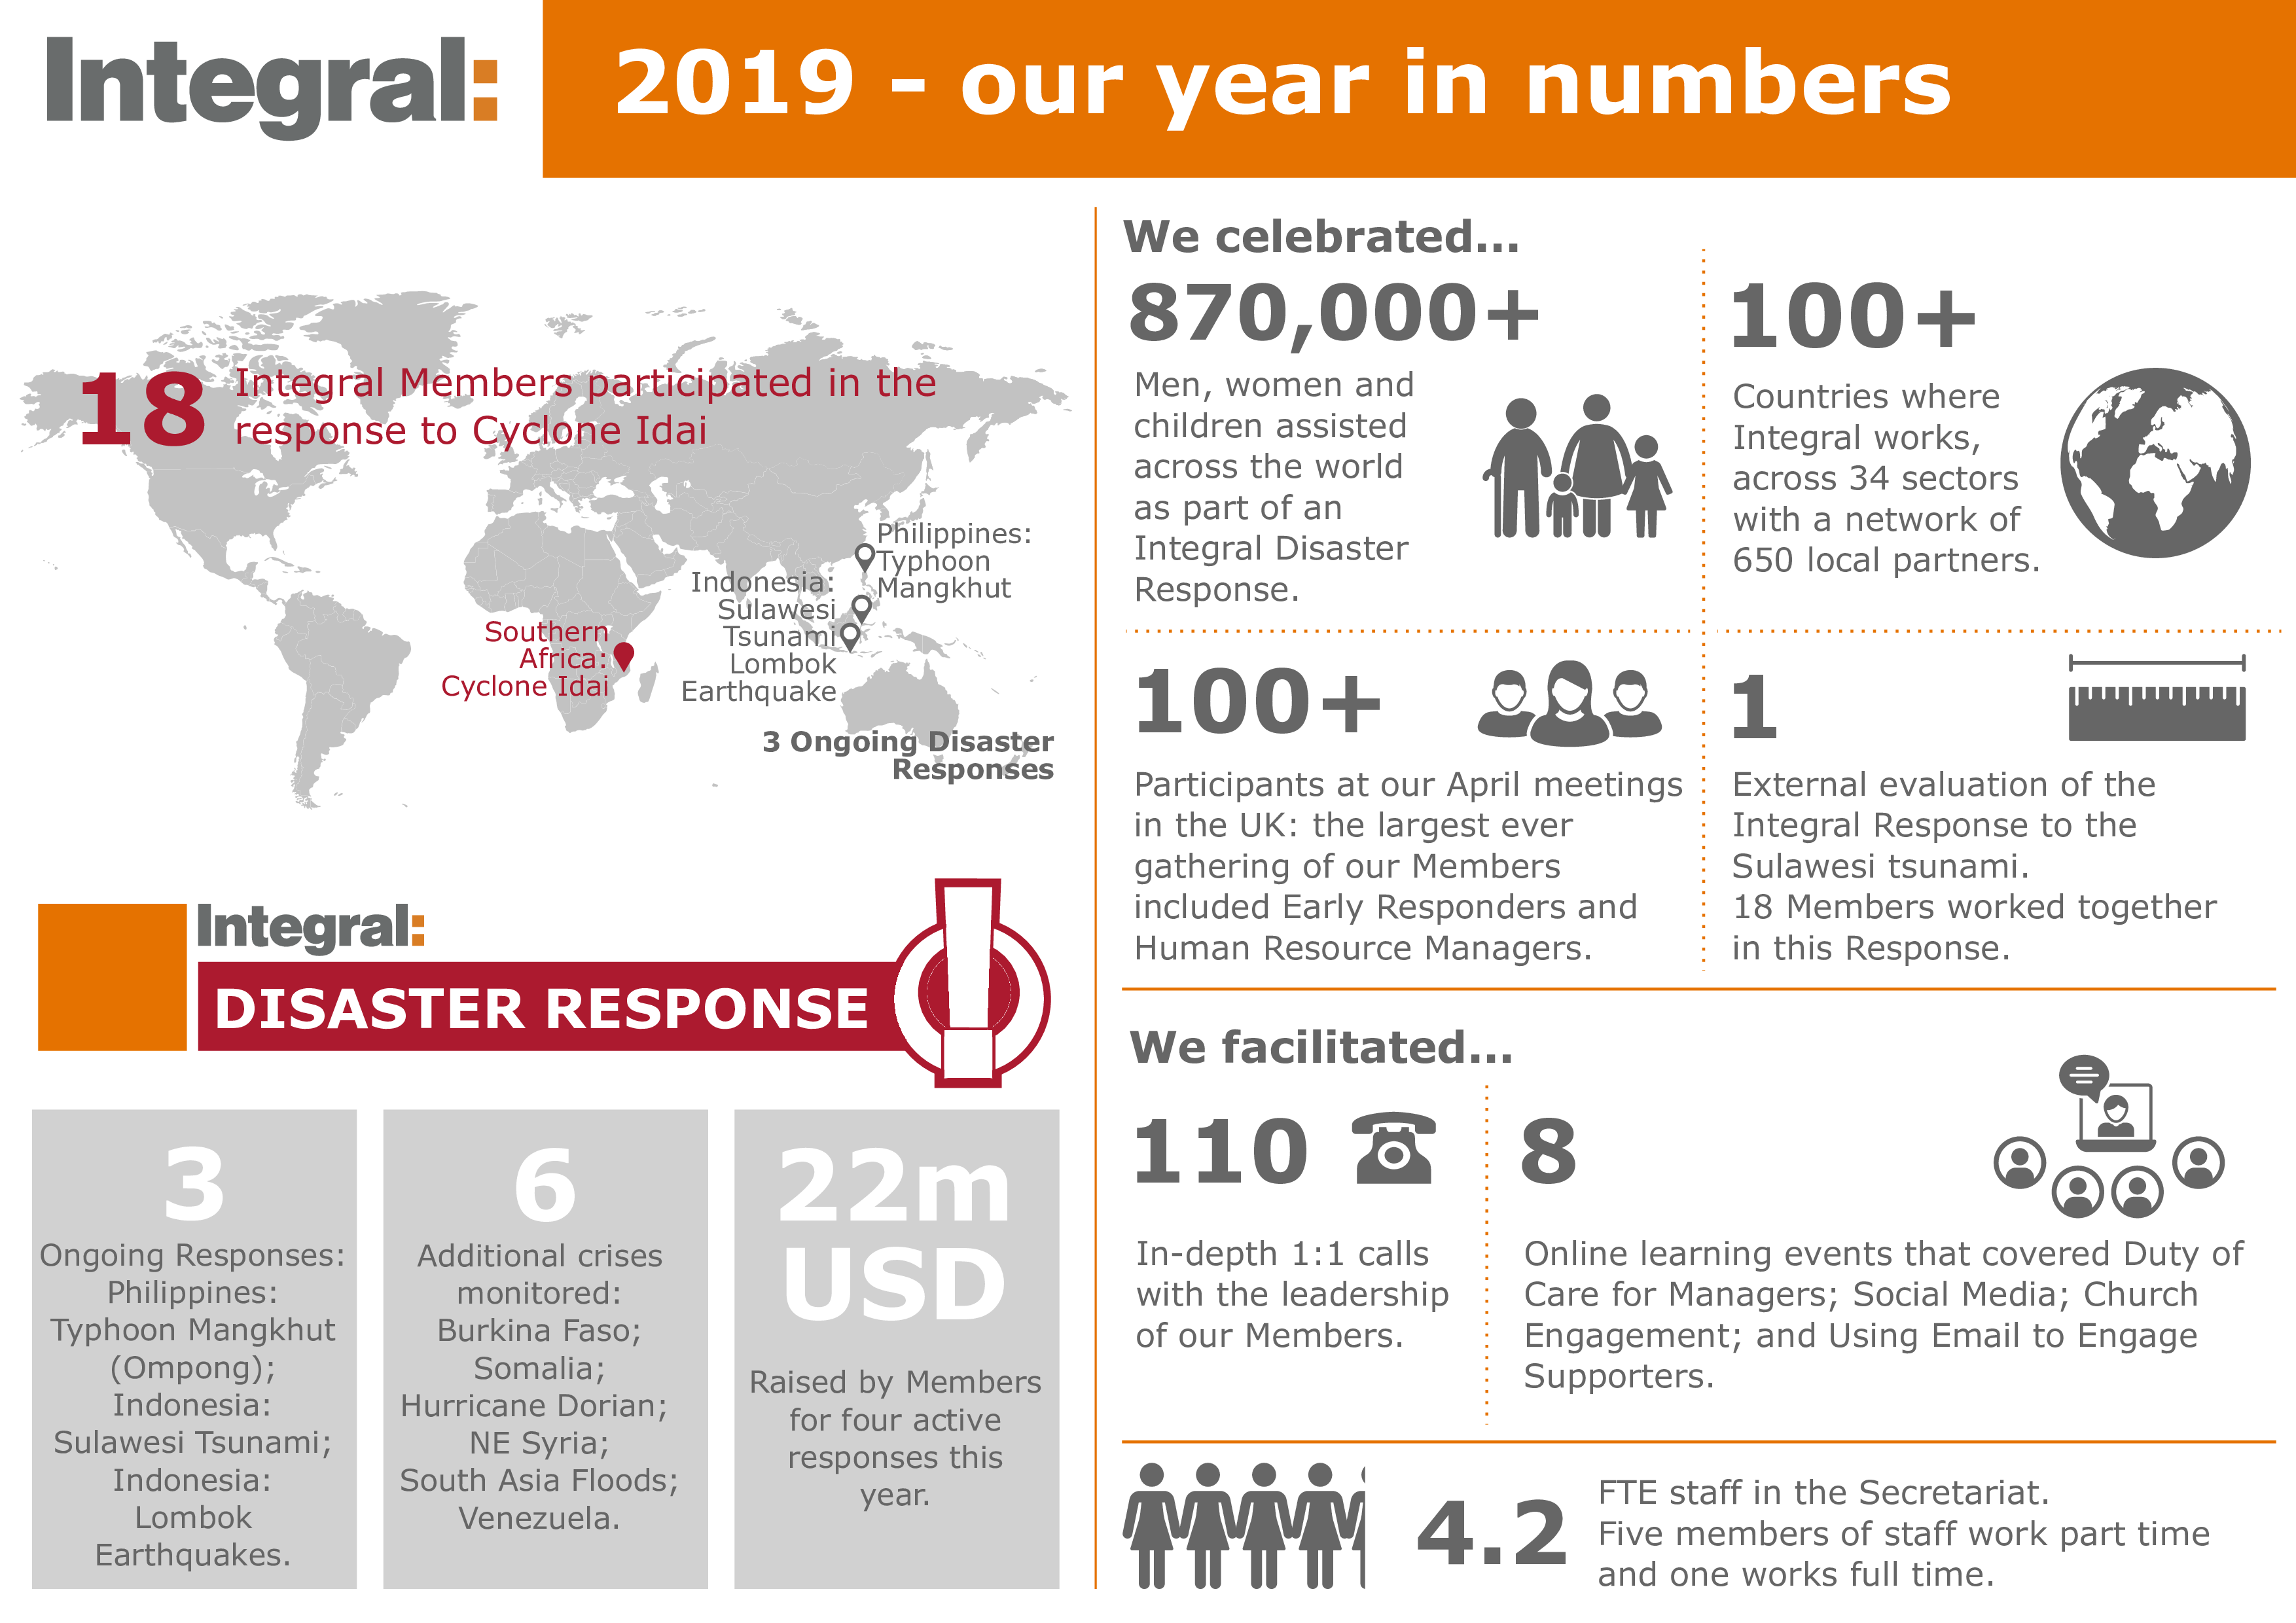 2019_Our_year_in_numbers_p001.png